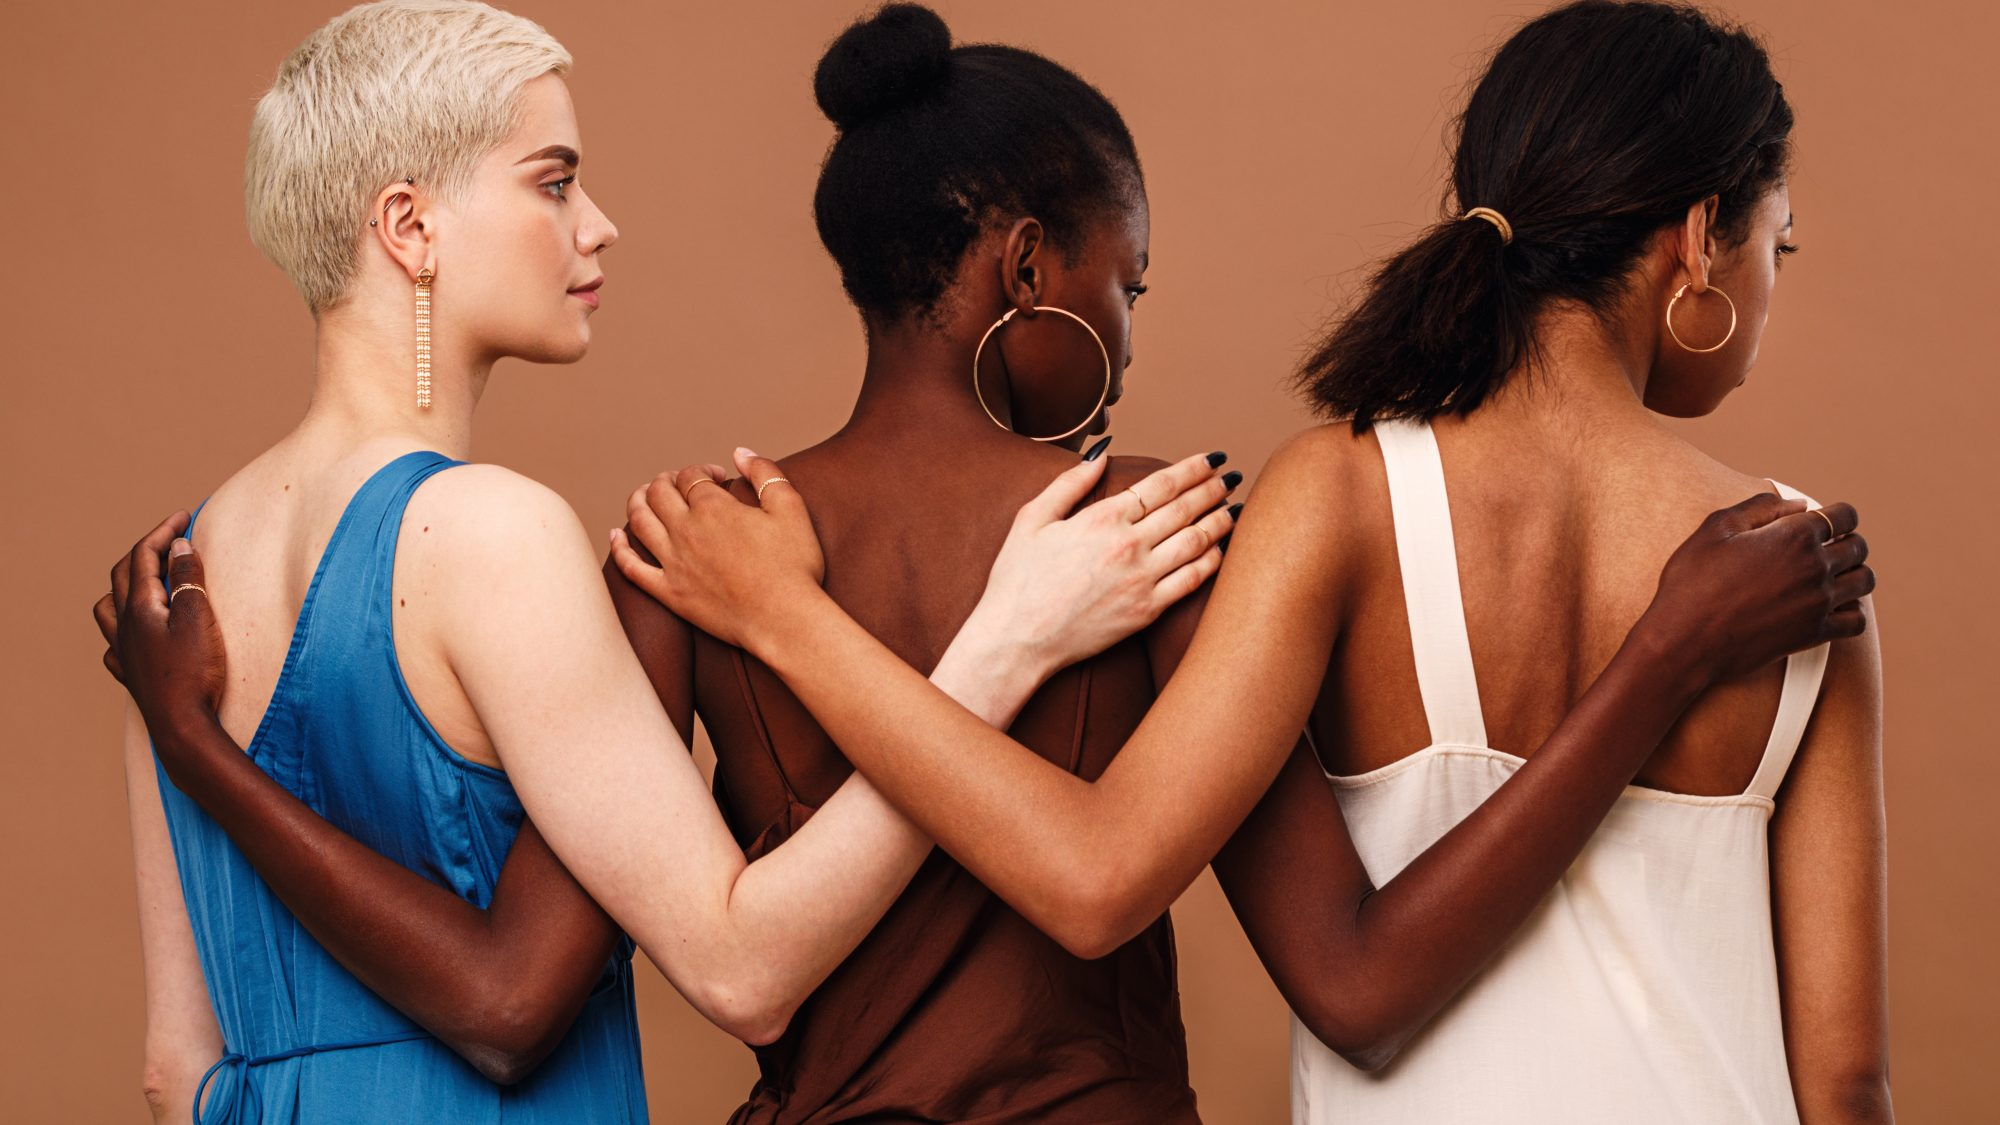 inclusive-foundation-brands: three women with different skin tones